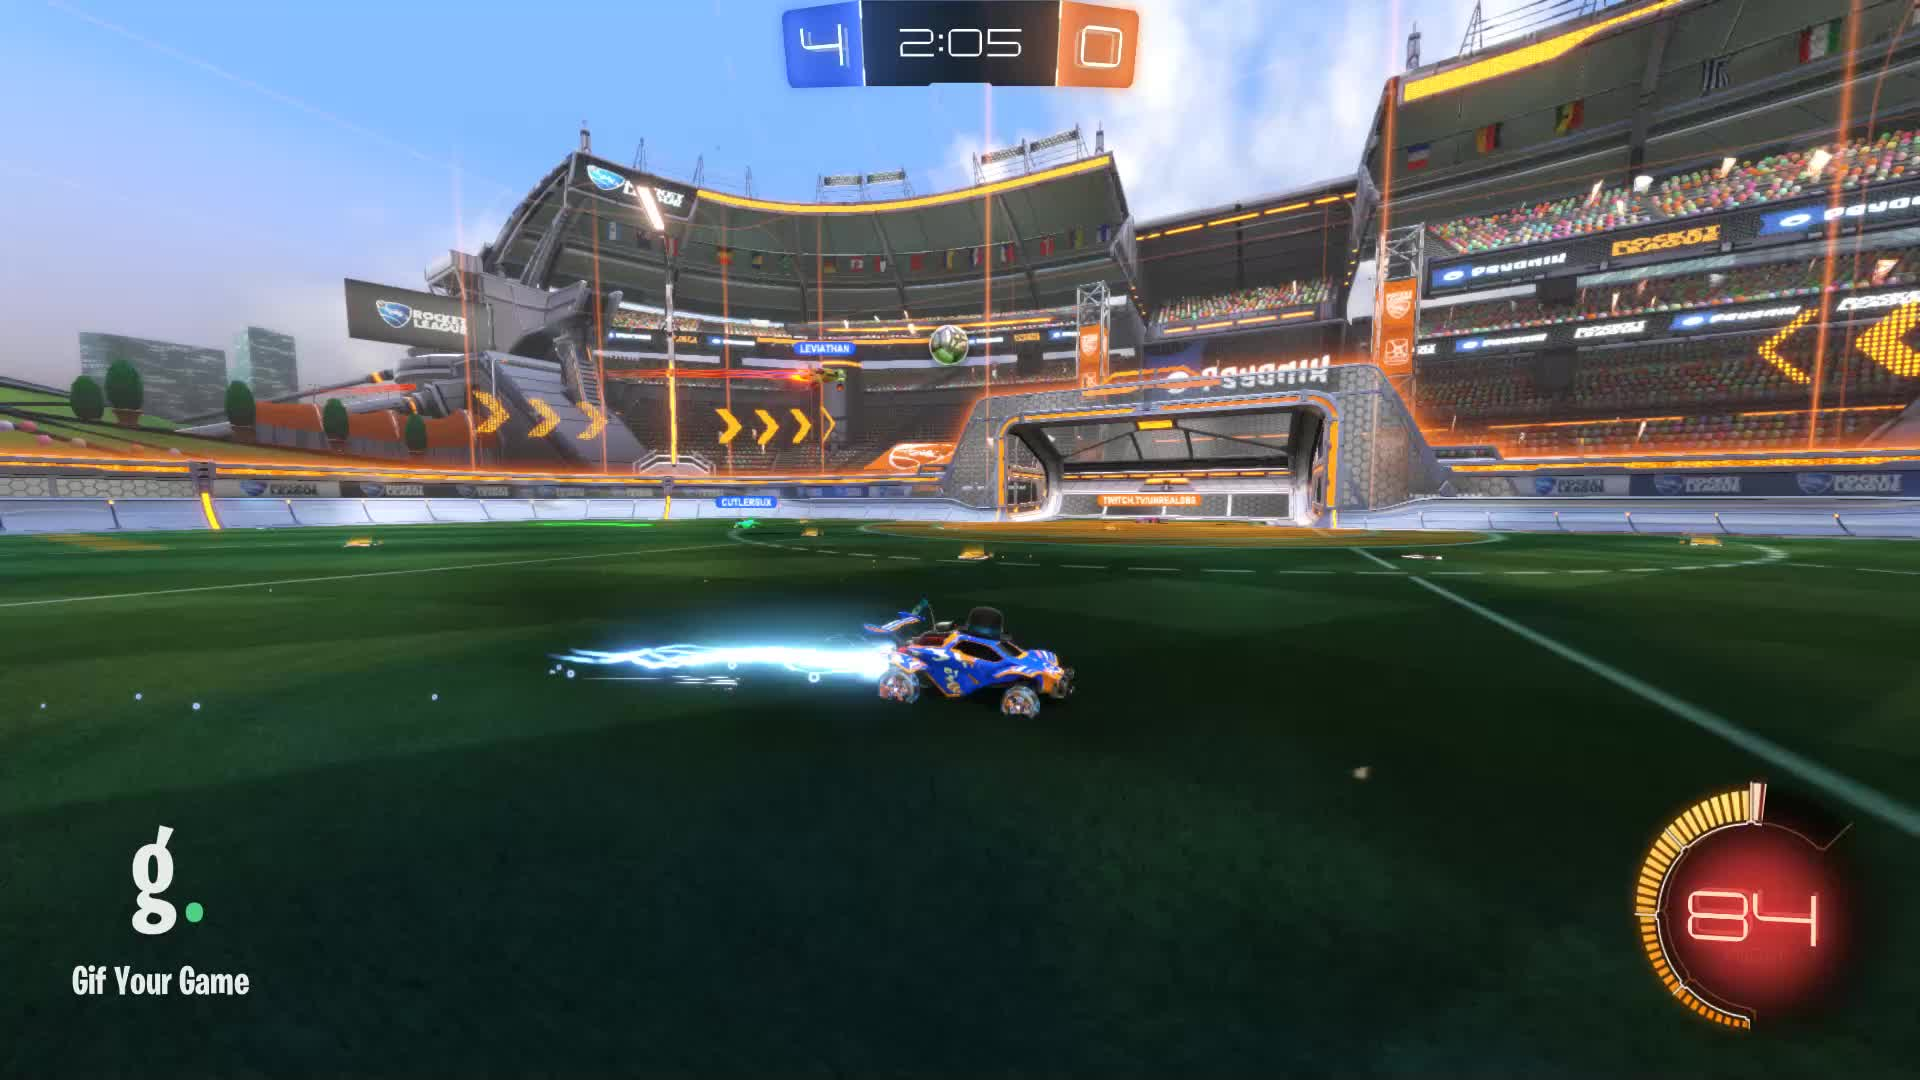 Duck Dodgers, Gif Your Game, GifYourGame, Goal, Rocket League, RocketLeague, Goal 5: Duck Dodgers GIFs